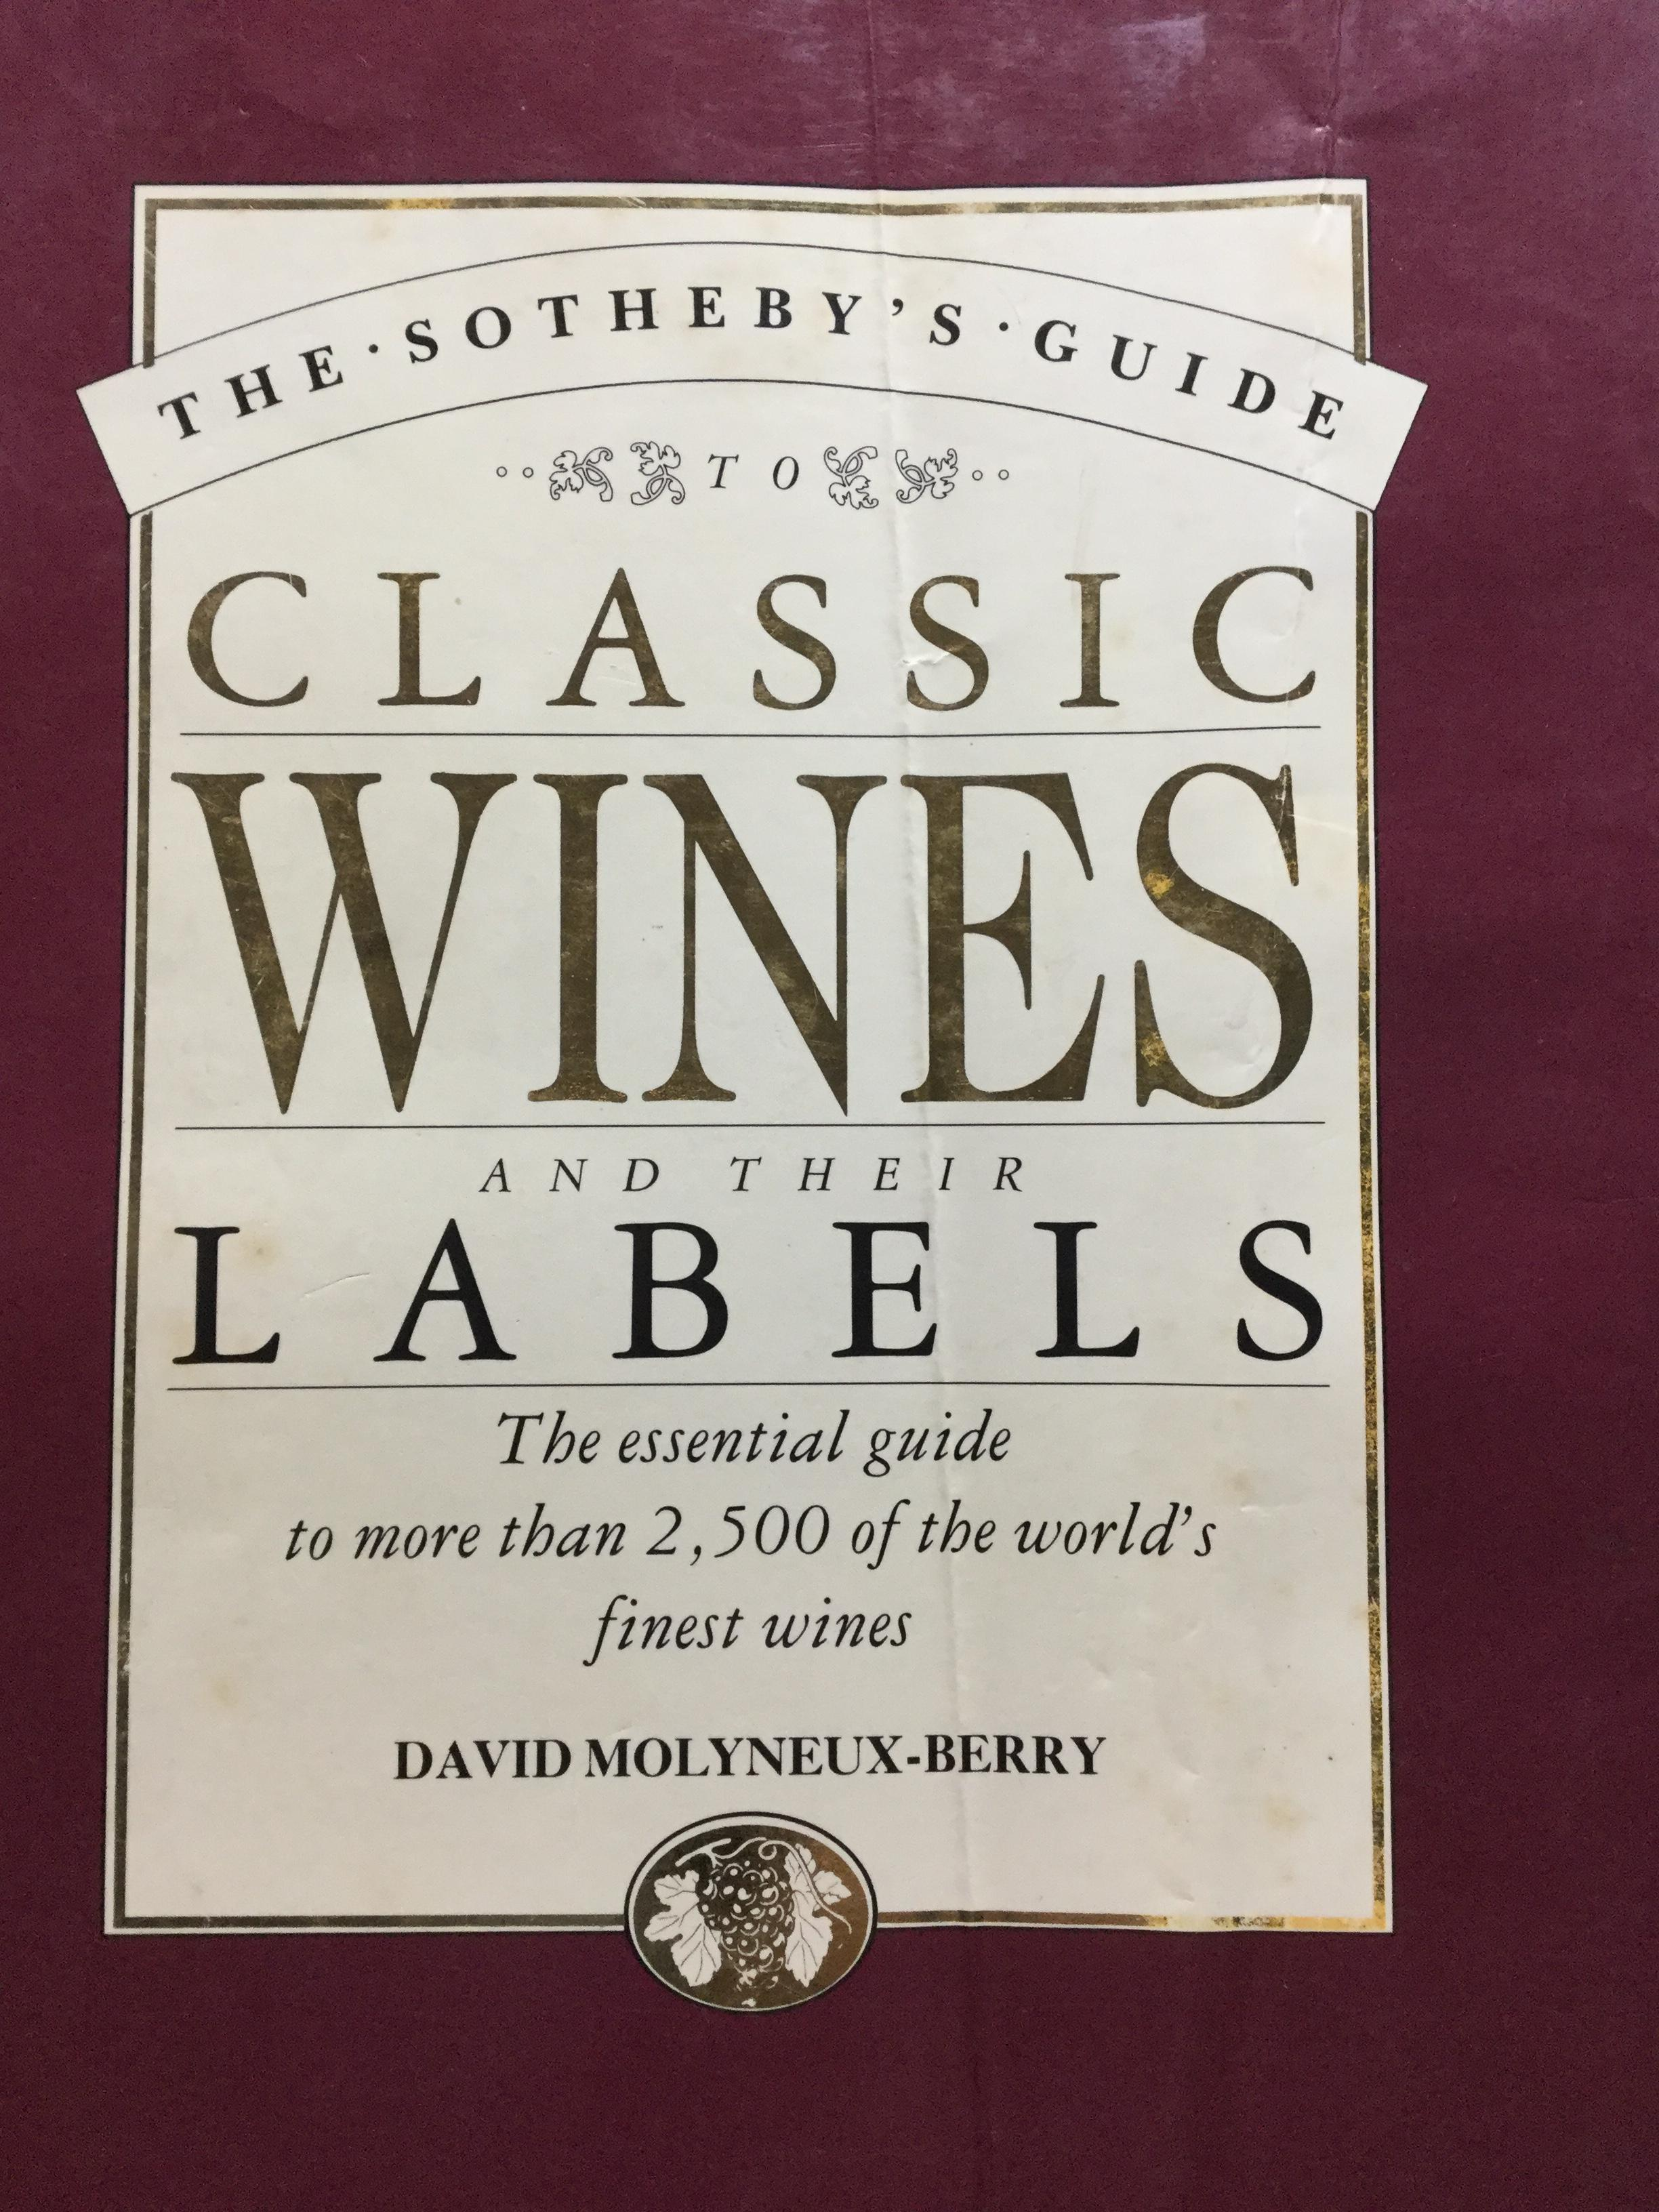 The Southey's Guide CLASSIC WINES and their LABELS The essential guide to more than 2,500 of the world 's finest wine